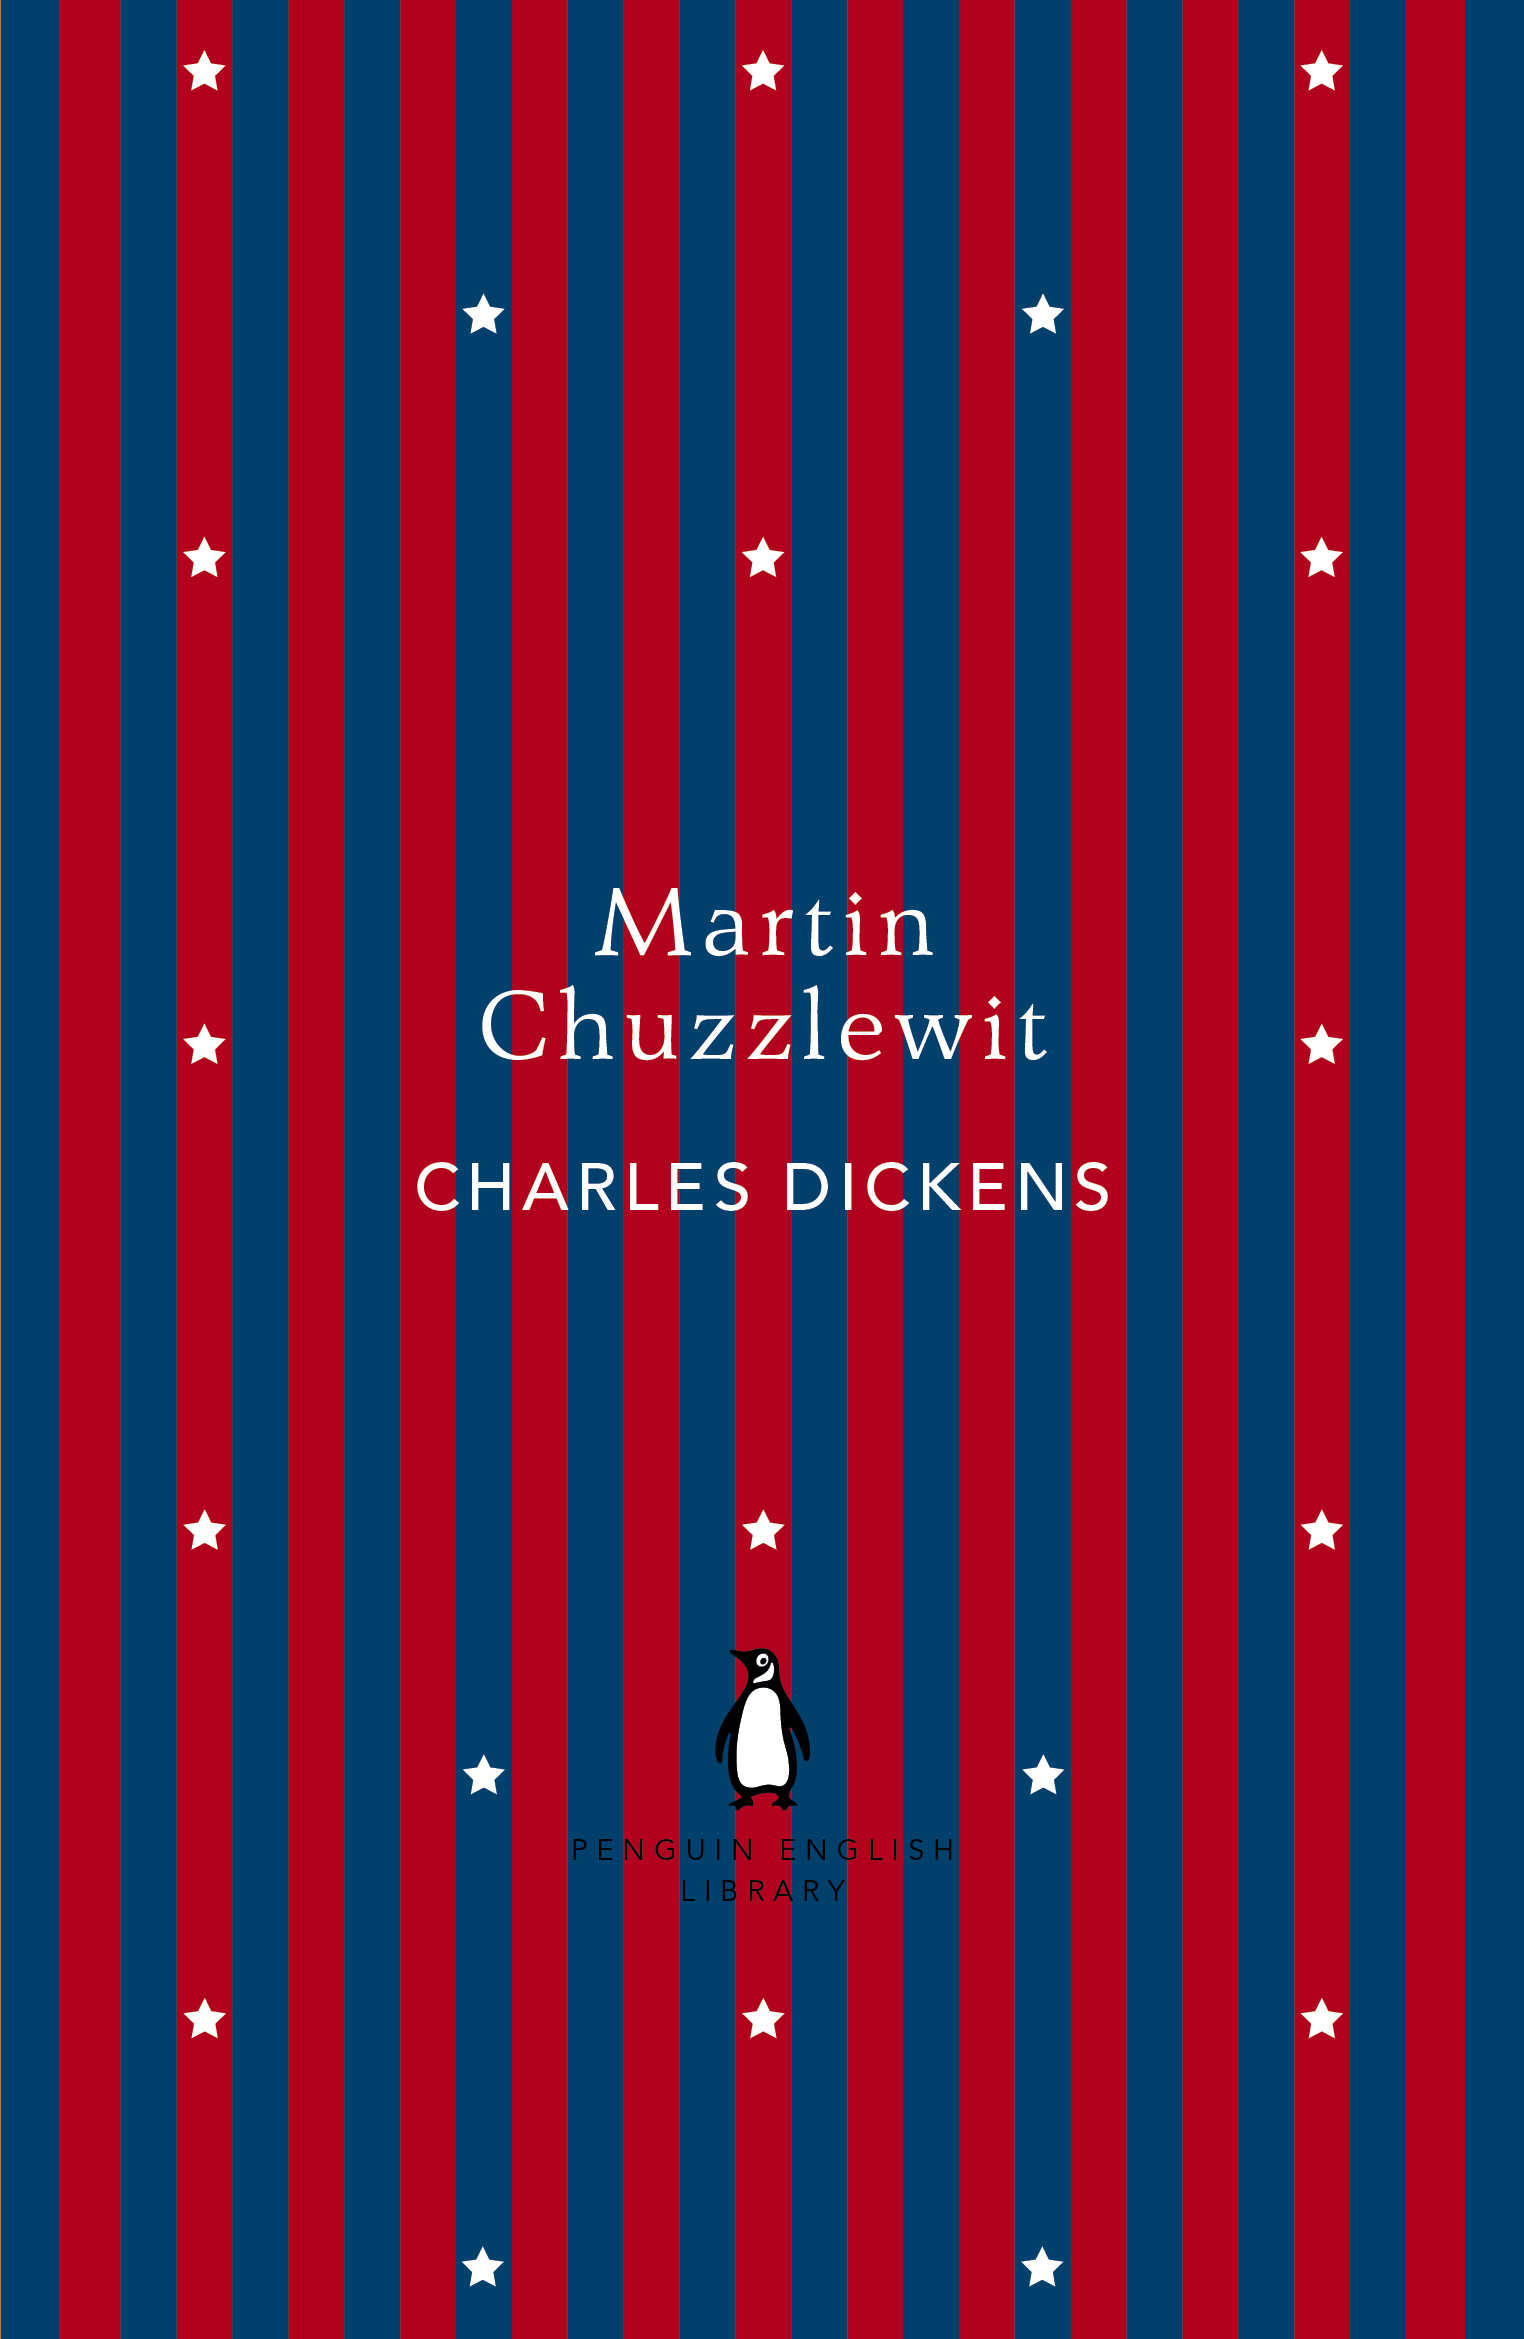 Martin Chuzzlewit by Charles Dickens, ISBN: 9780141973791